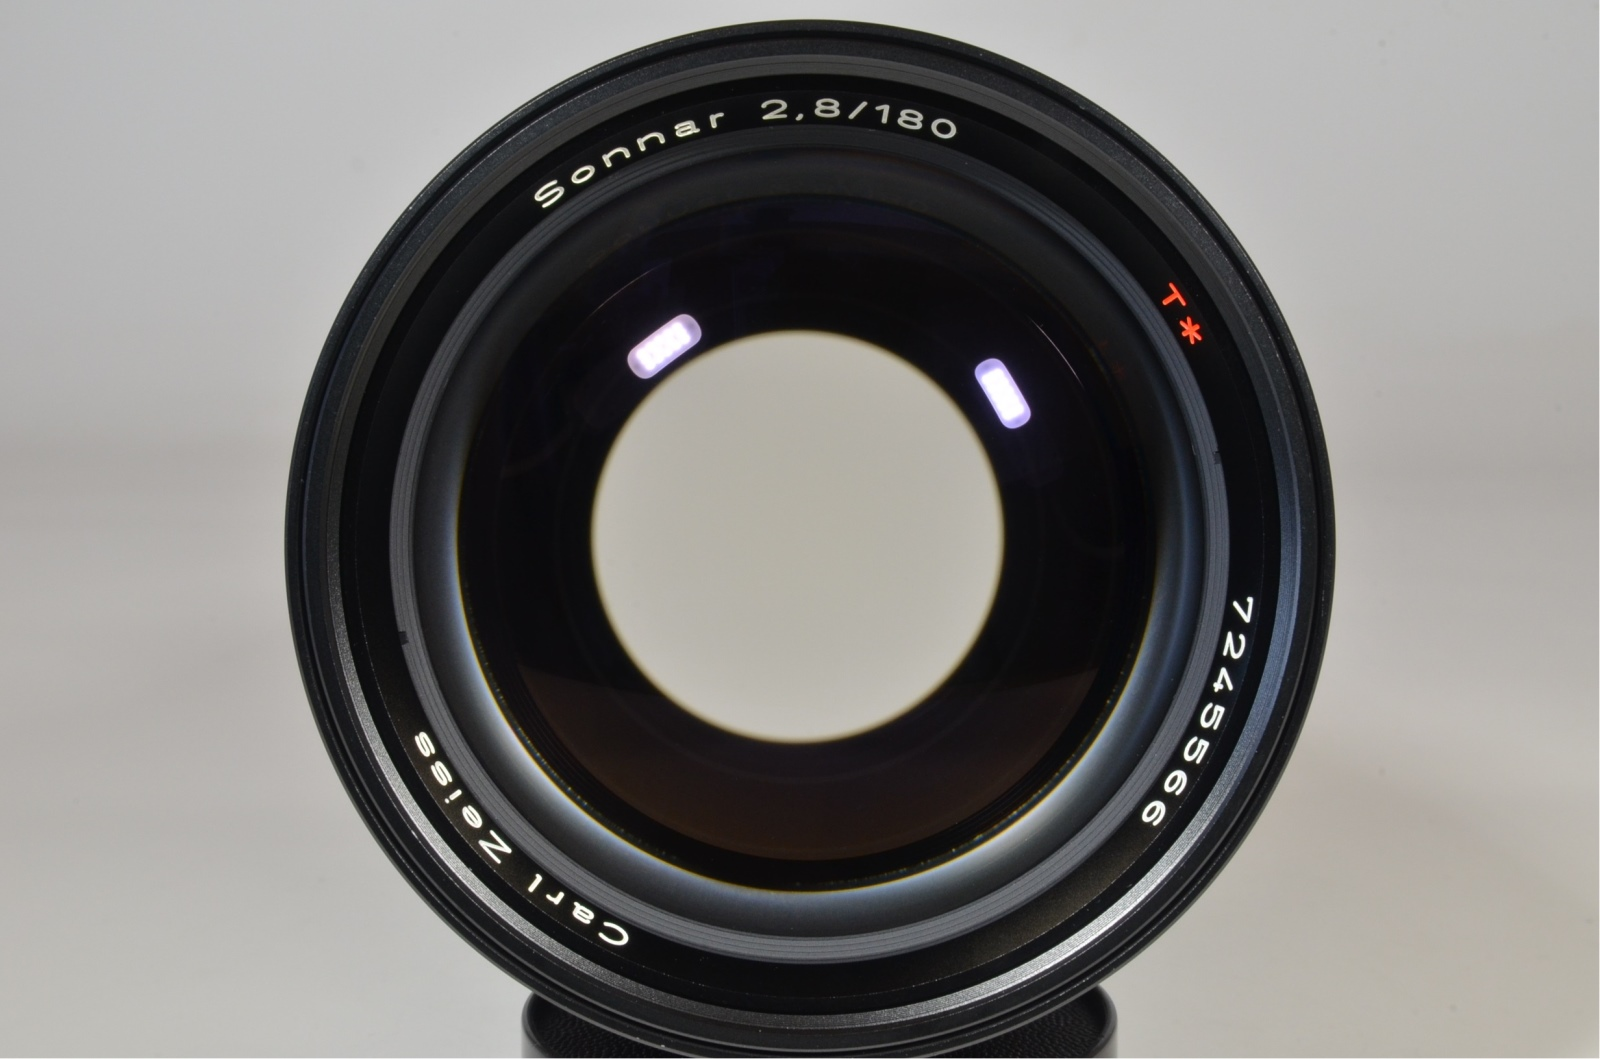 contax carl zeiss sonnar t* 180mm f2.8 mmj